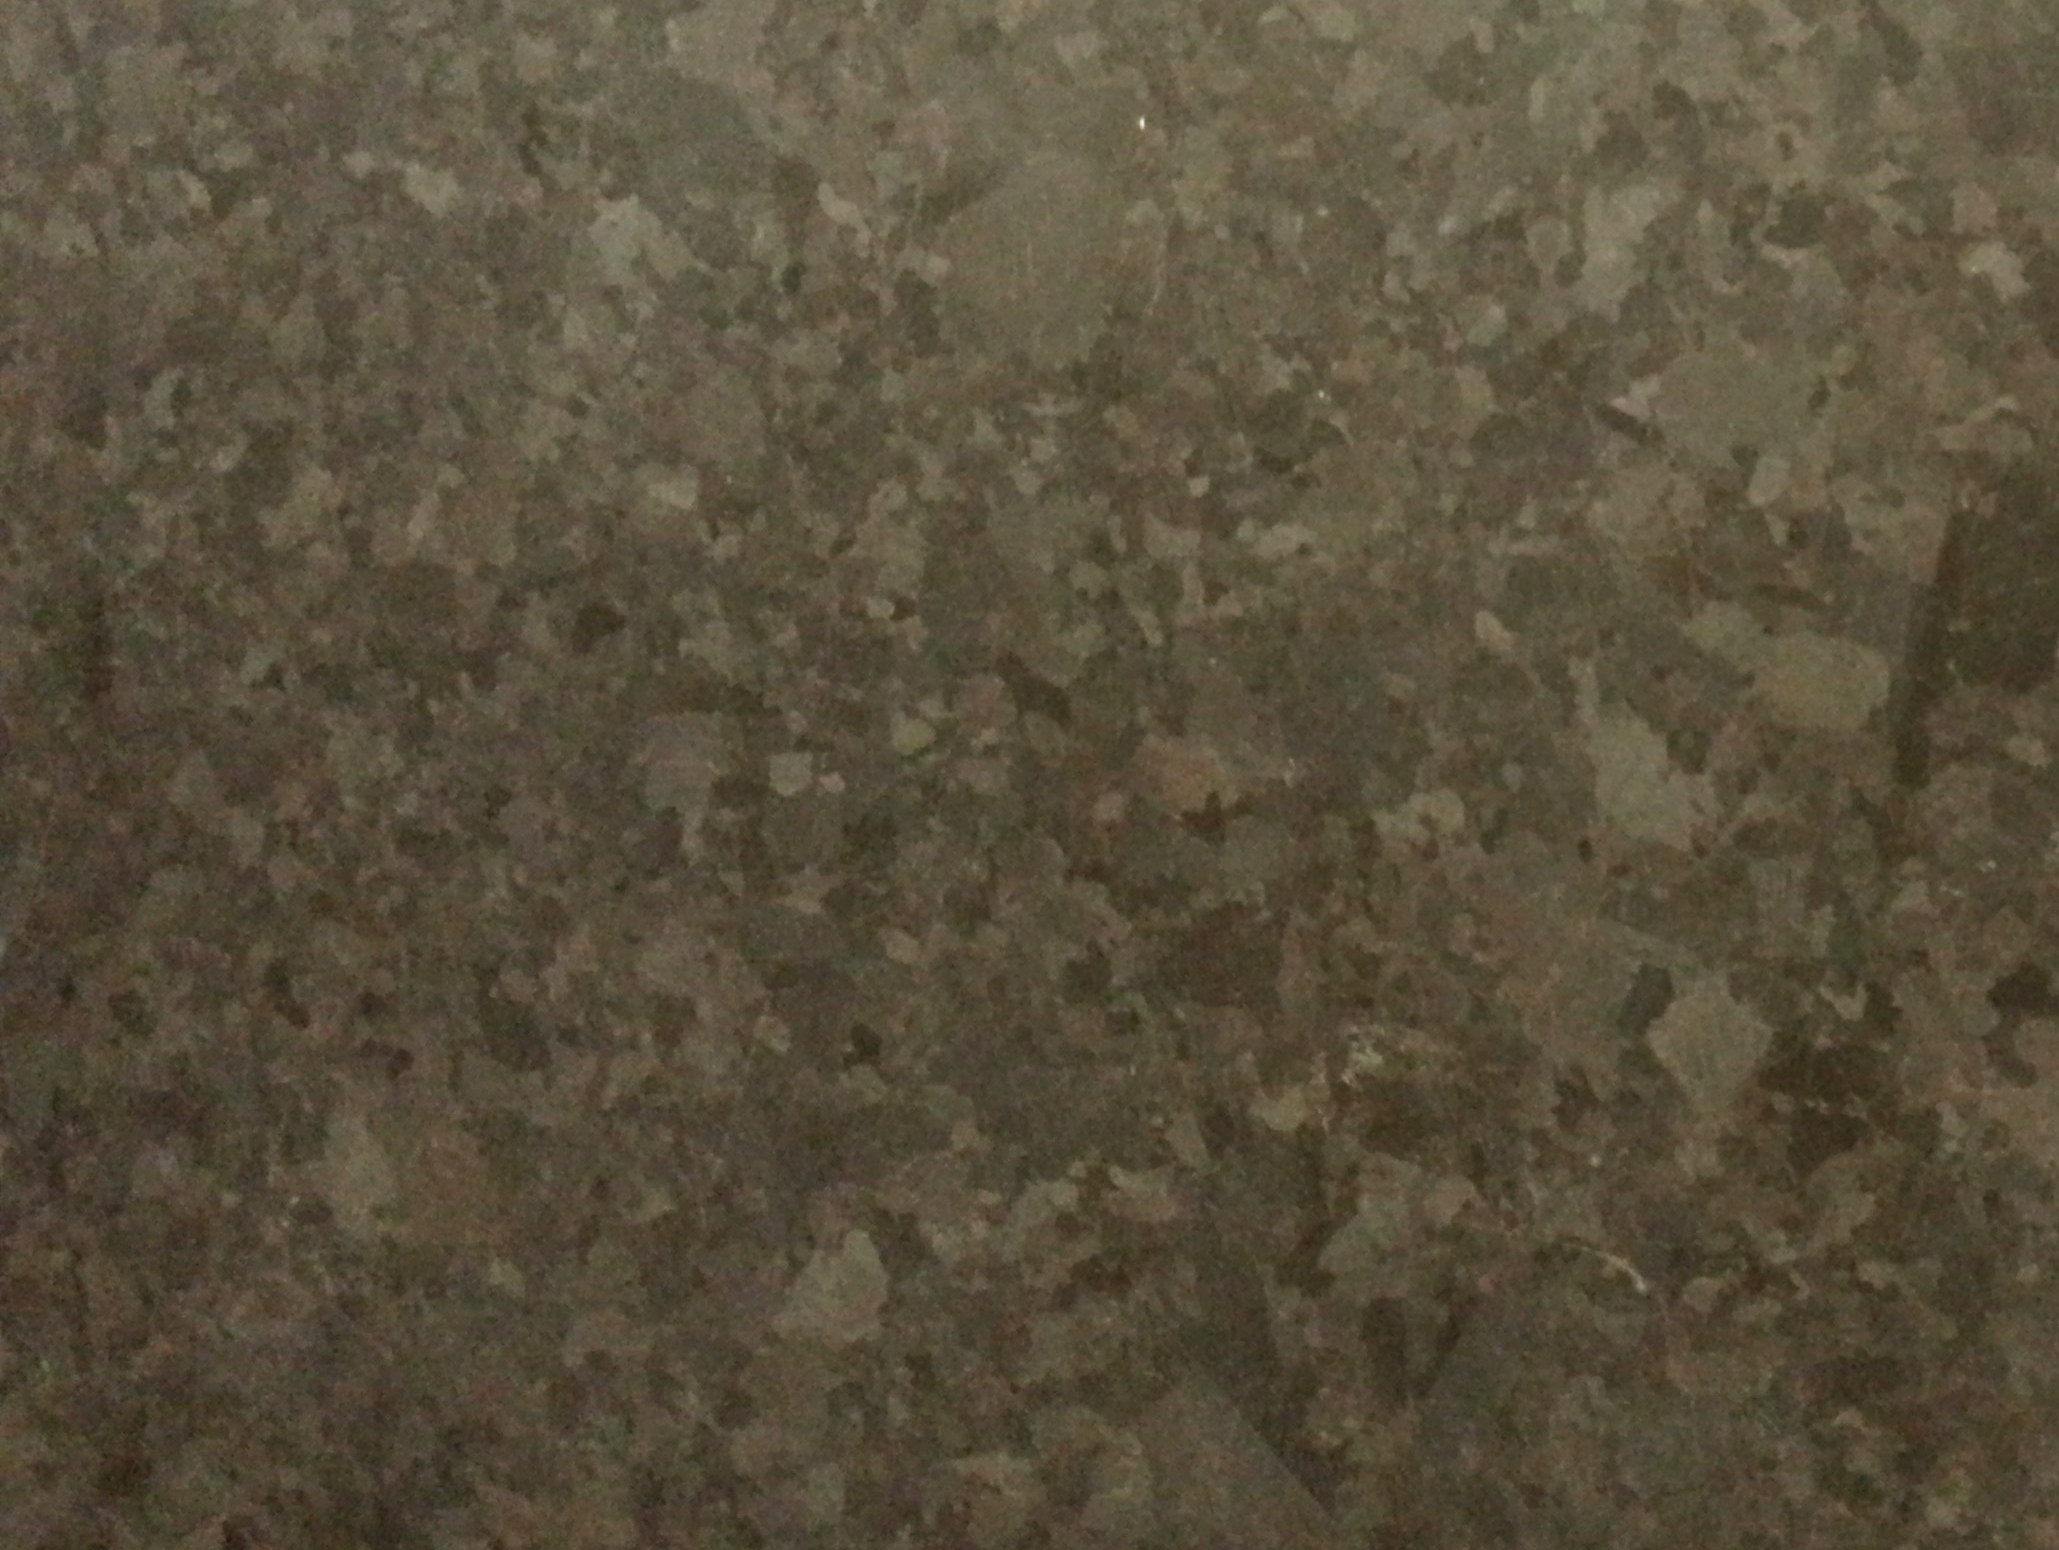 Antique Brown Honed Slab 30Mm